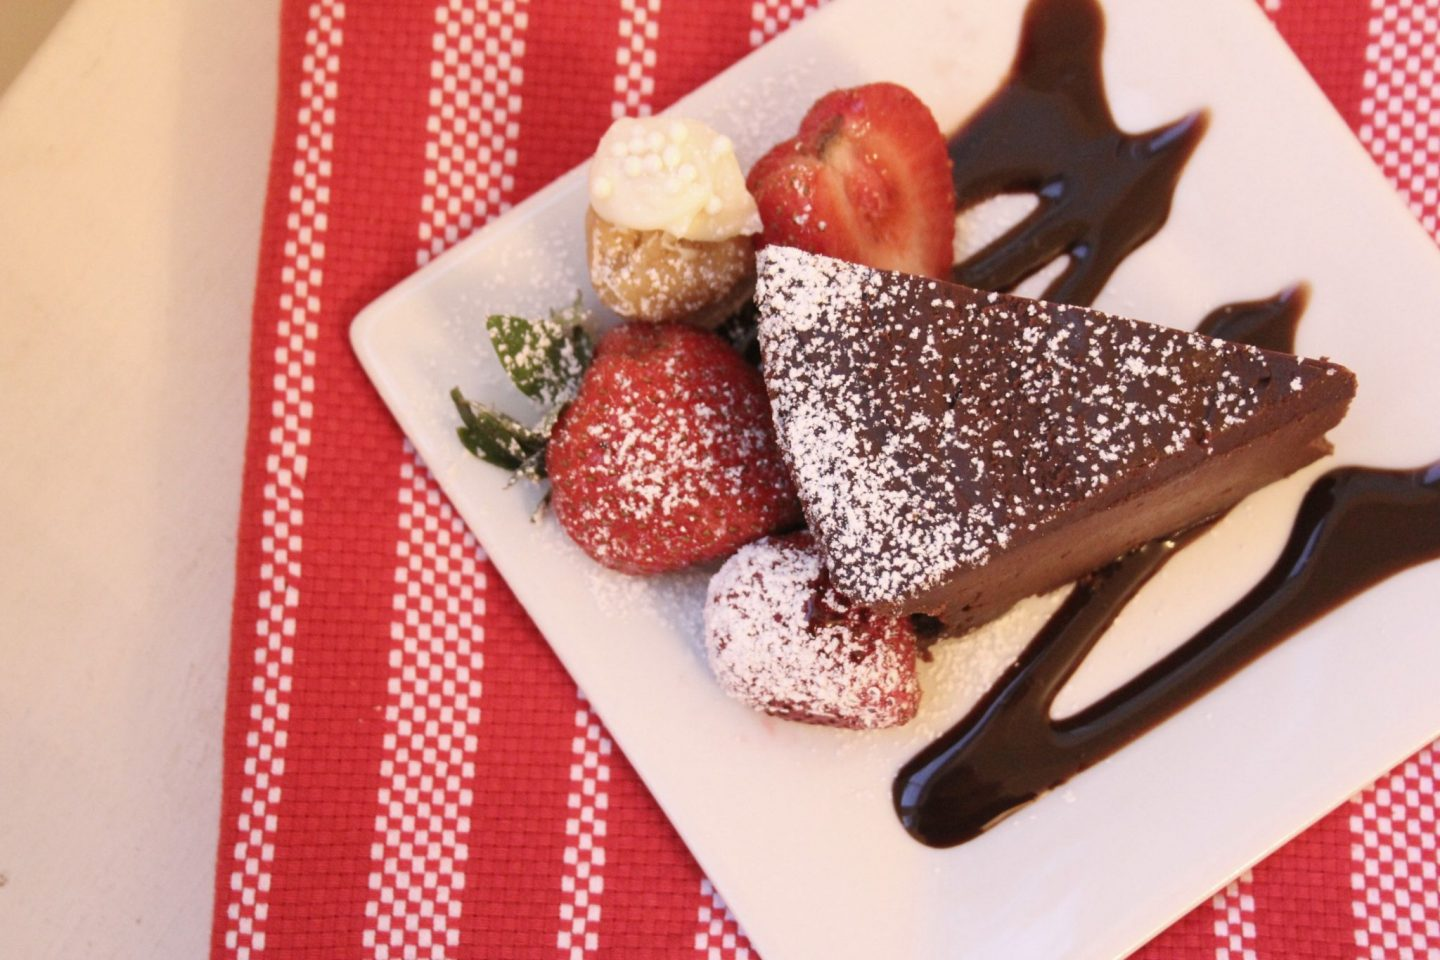 Slice of chocolate cake with strawberries and sugar cookie truffle